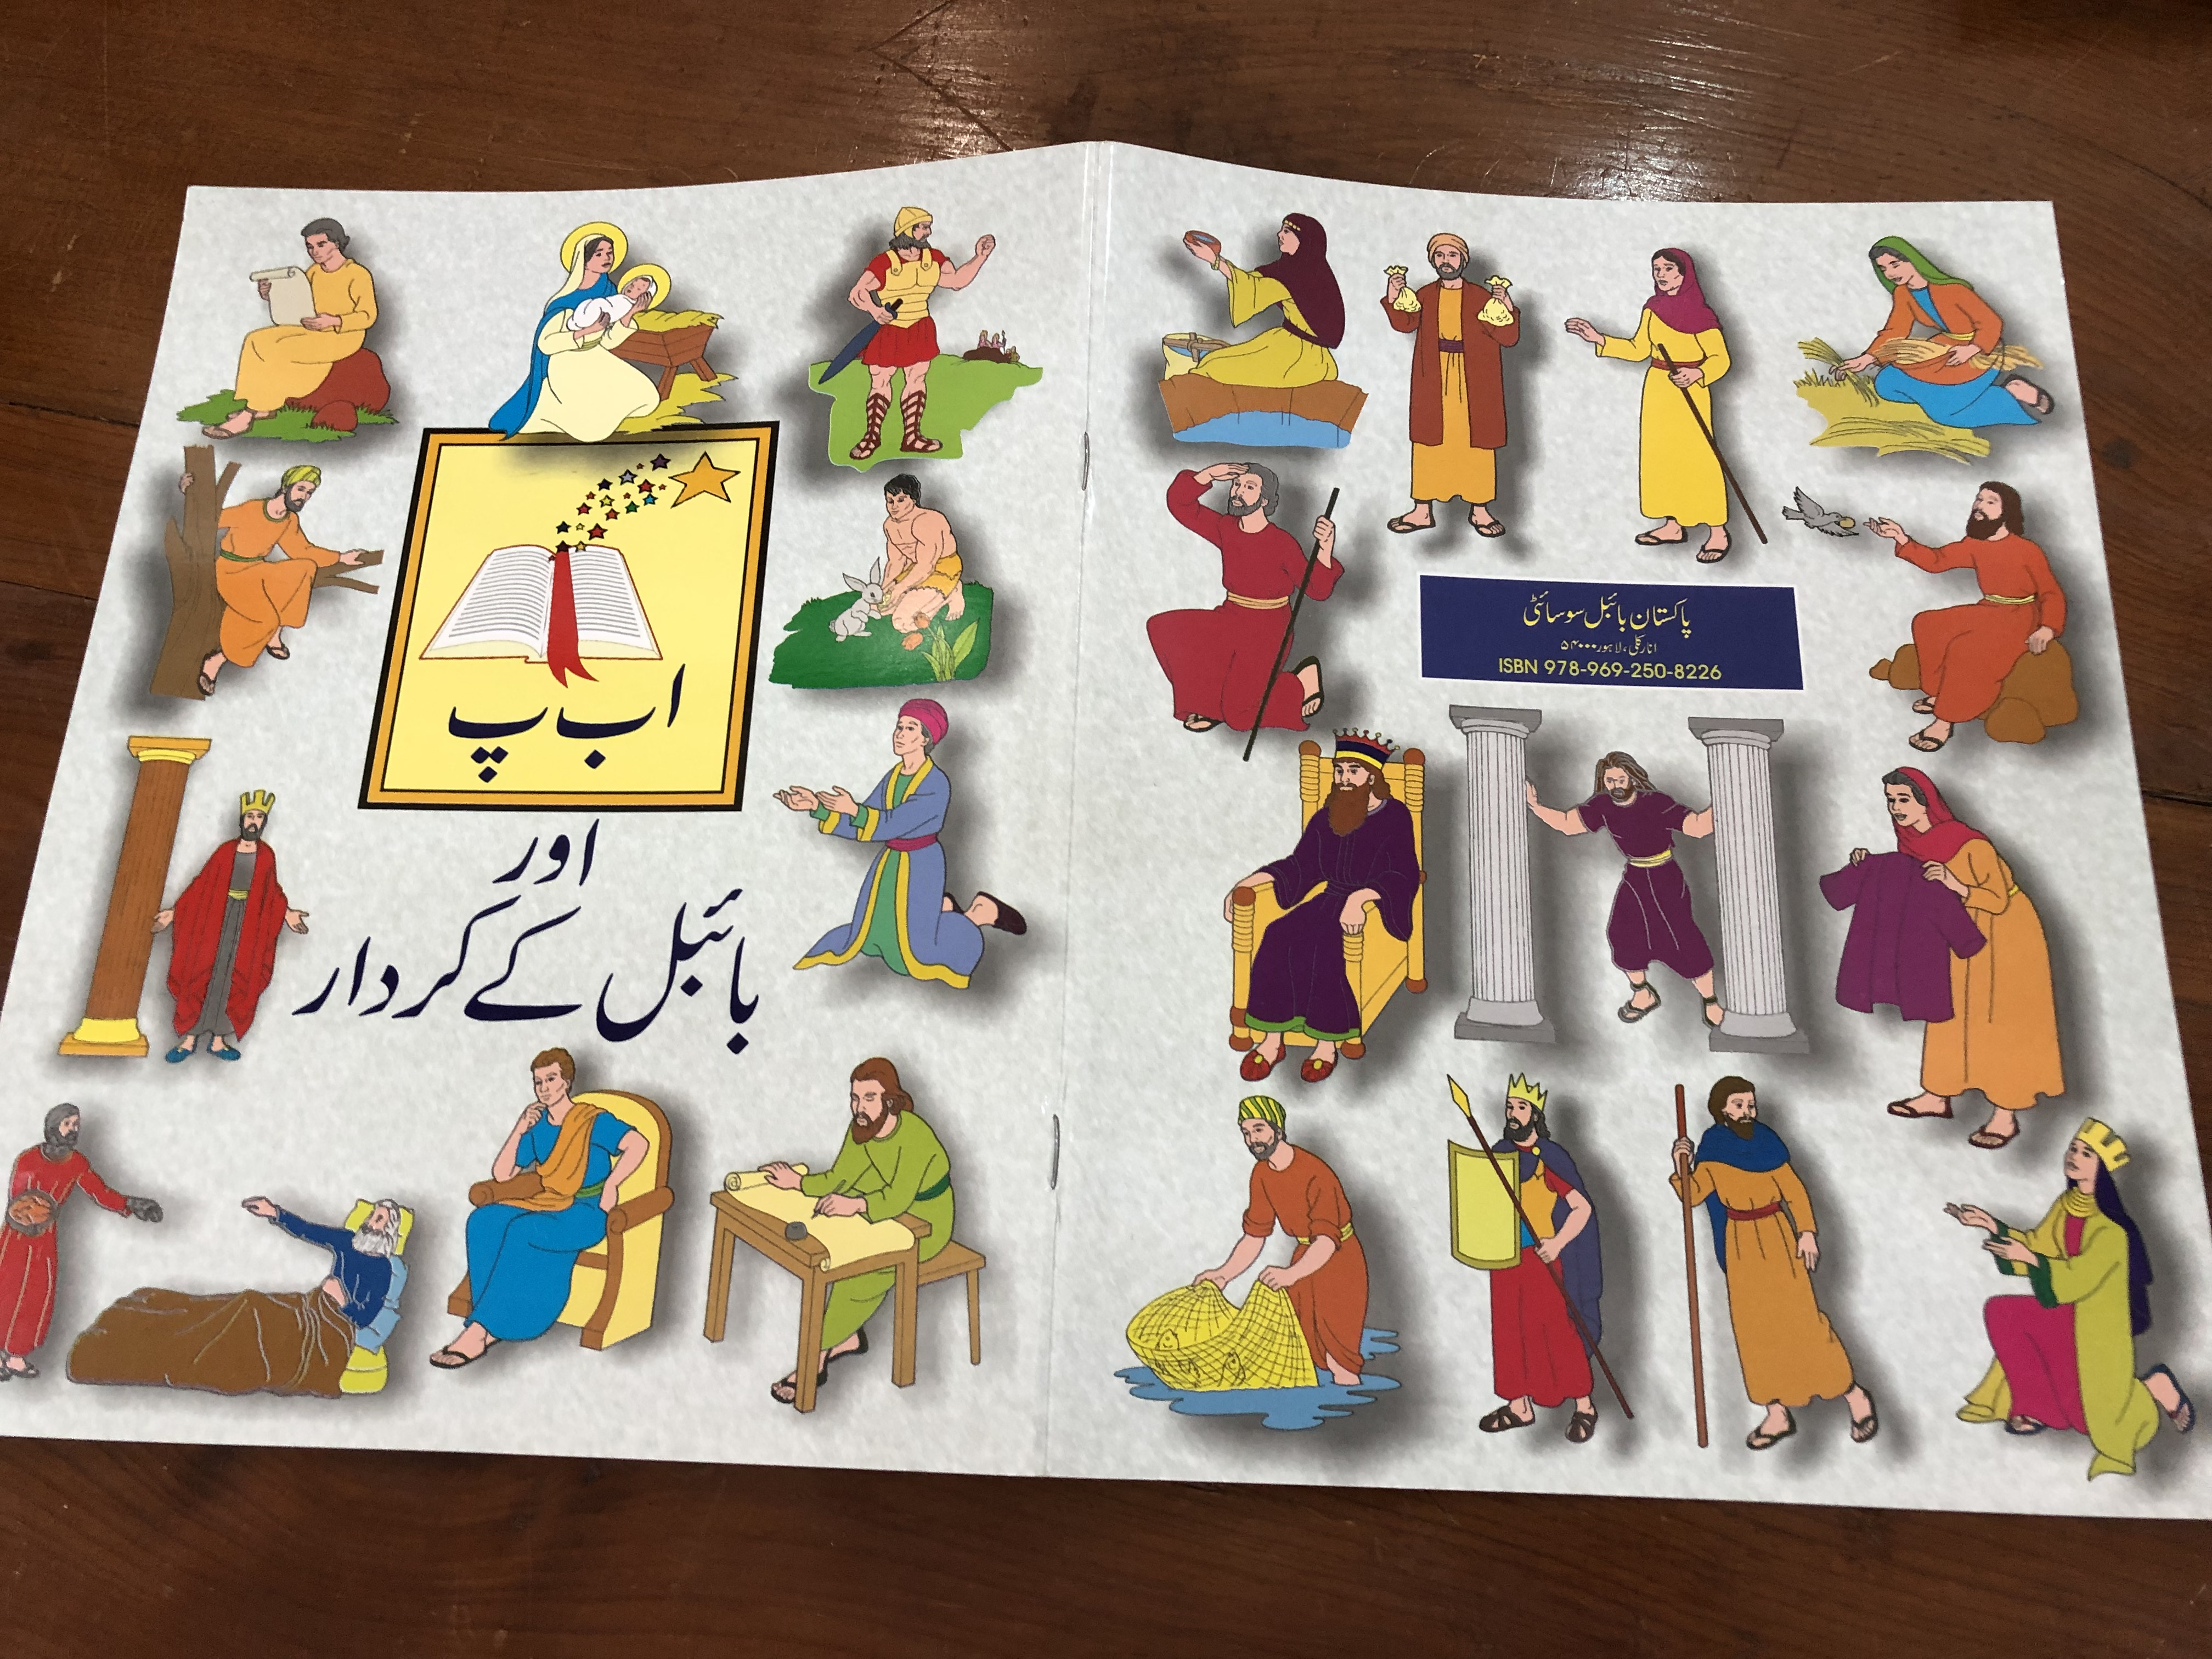 -abc-of-the-bible-urdu-language-children-s-coloring-book-paperback-learn-the-urdu-letters-with-the-bible-9-.jpg